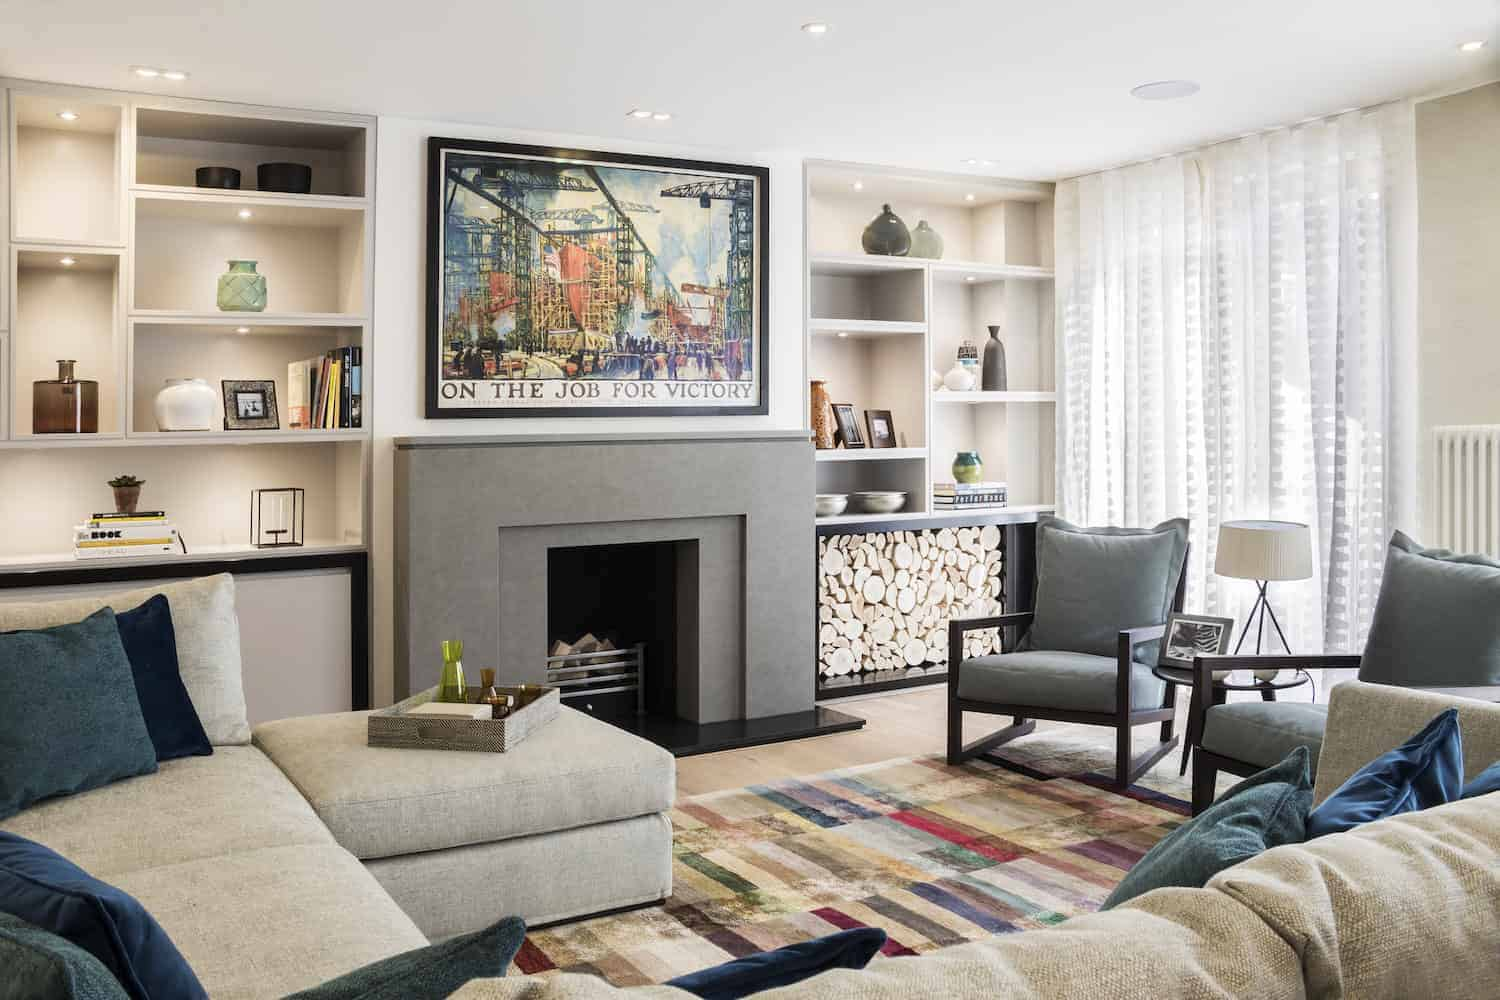 The fireplace is central to the space flanked by custom built-in shelving. The furniture includes a large, comfortable u-shaped sectional sofa facing two wood-framed accent chairs.